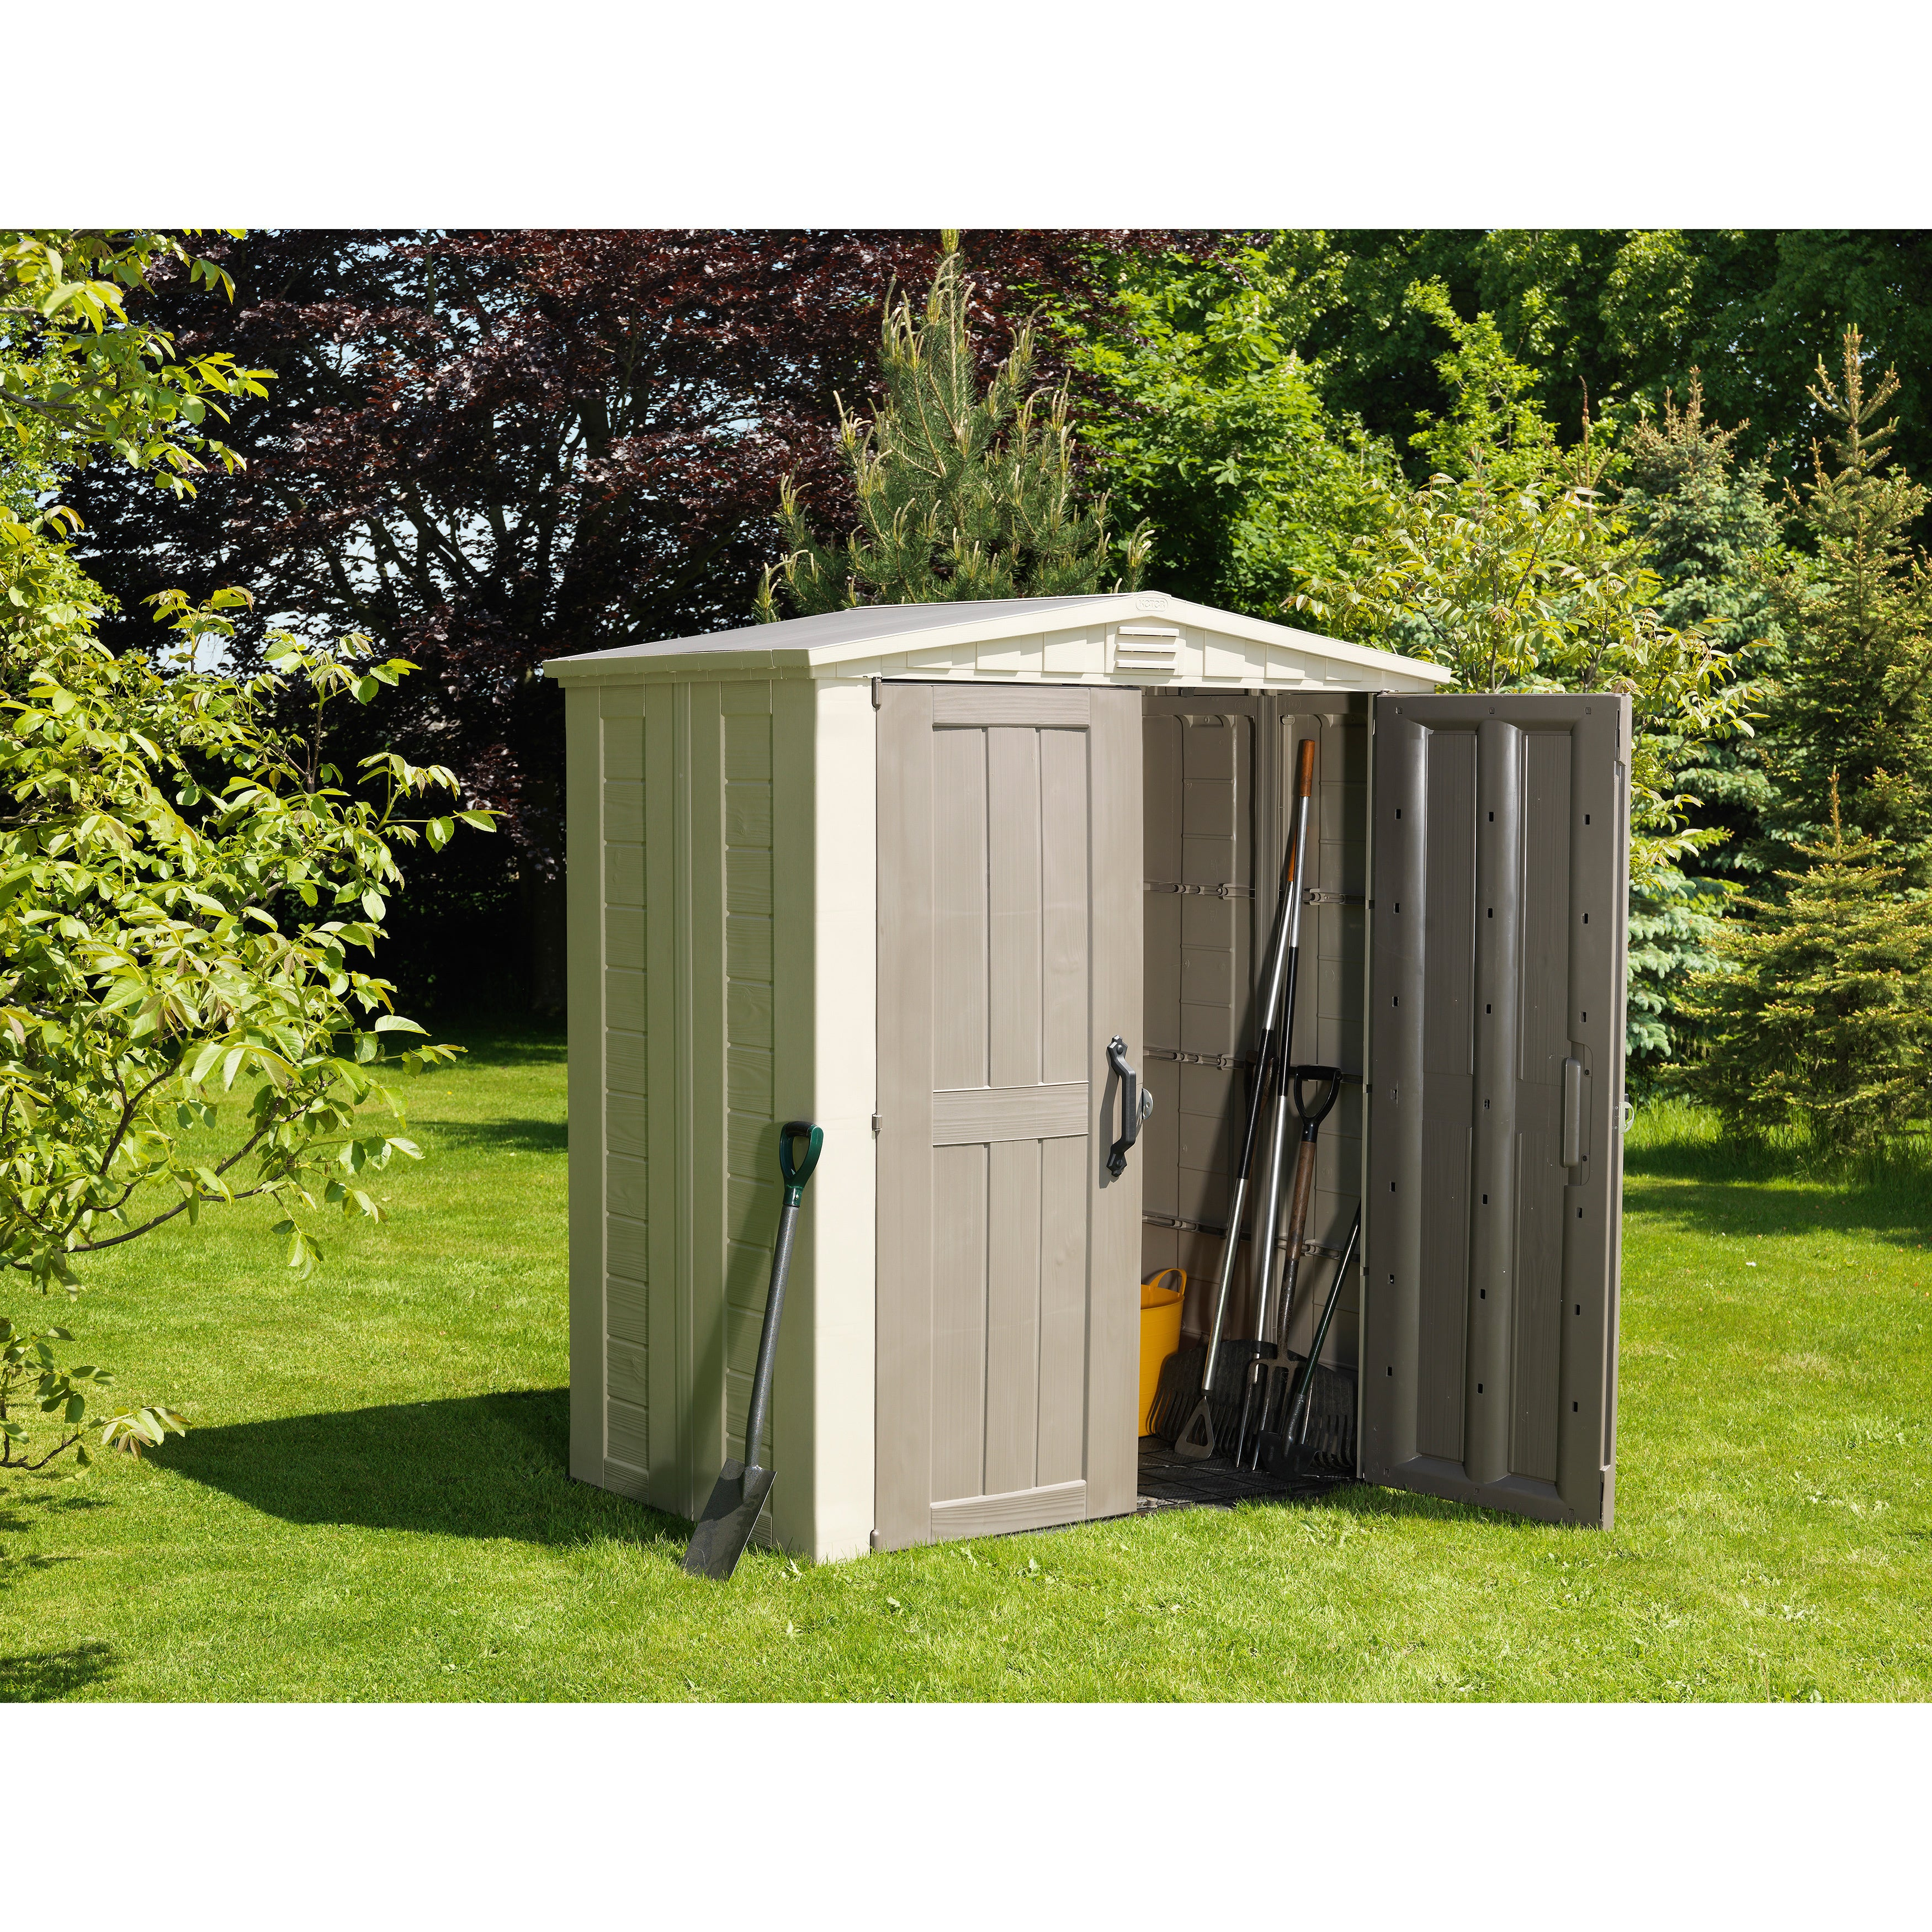 fast free p storage with x on shed assets reinforced shipping images steel lifetime sale sheds